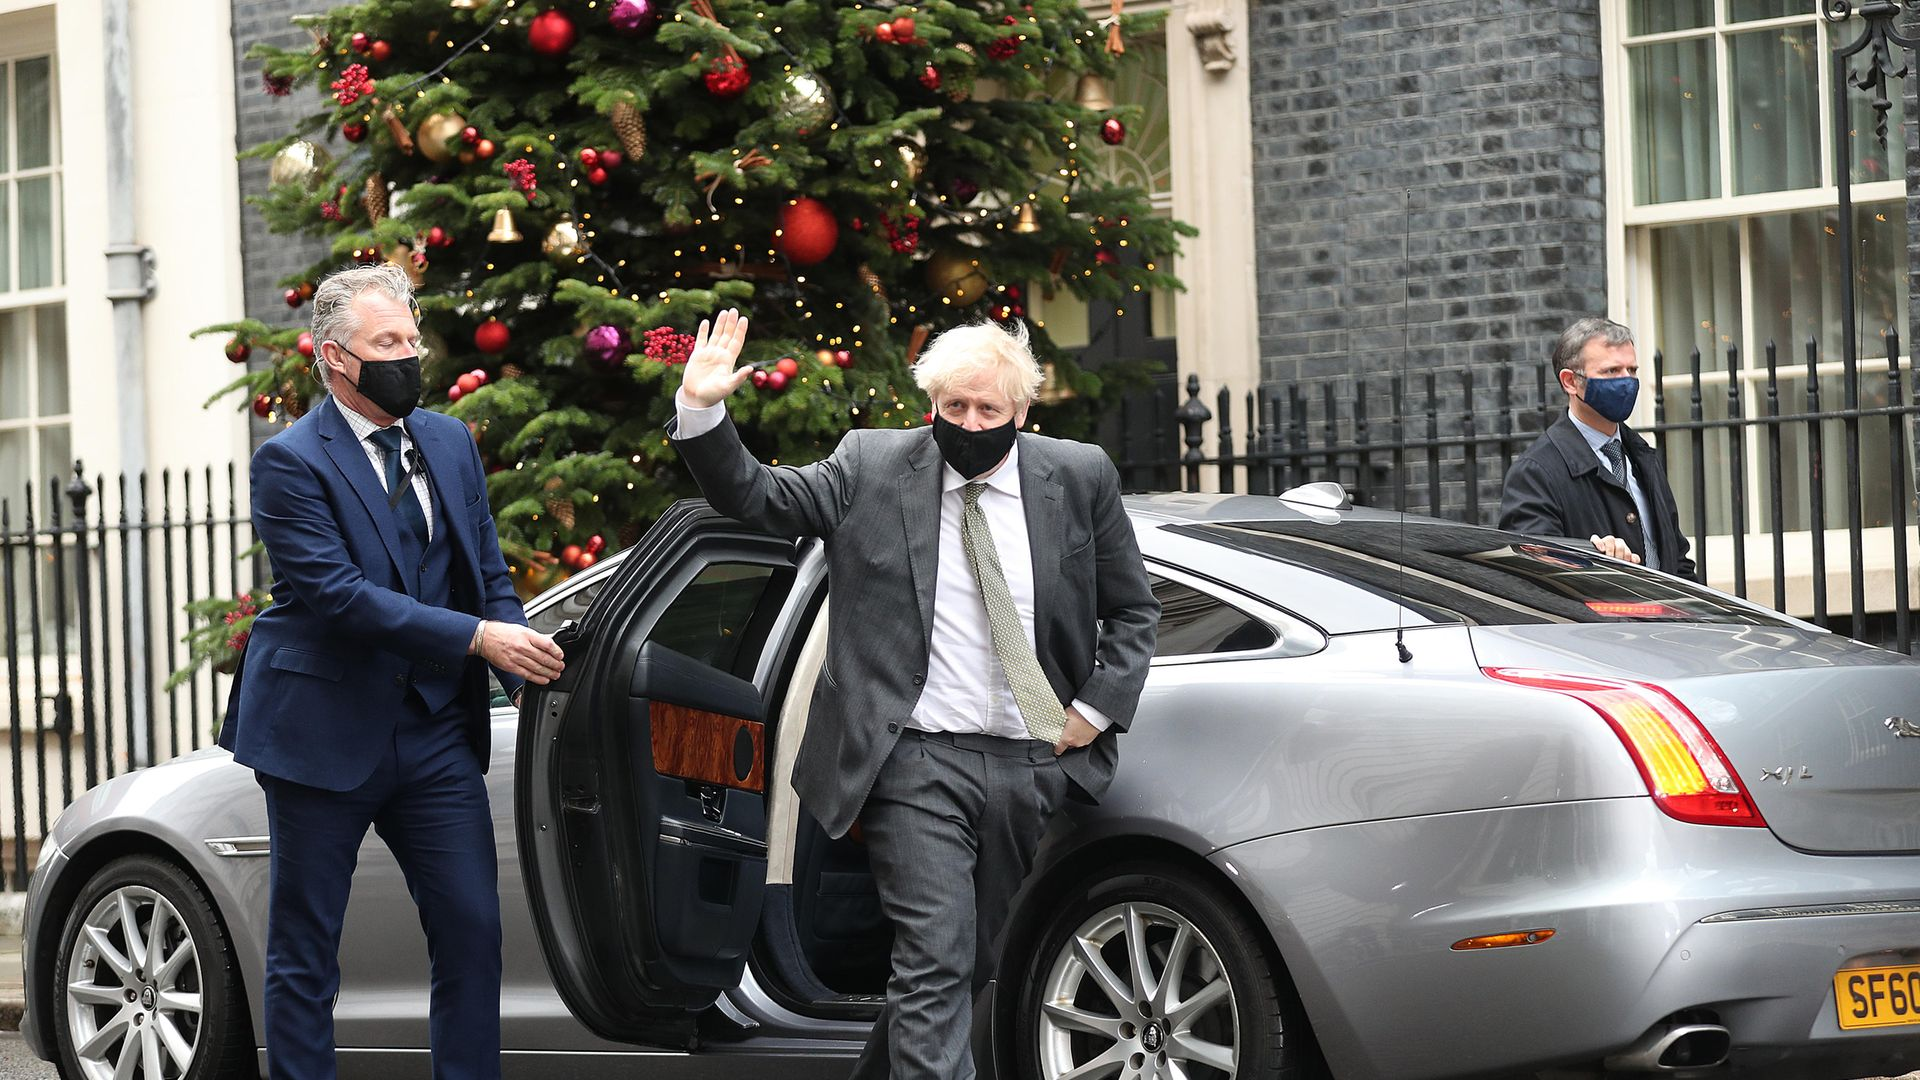 Prime minister Boris Johnson returns to 10 Downing Street after attending Prime Minister's Questions at the Houses of Parliament, London. - Credit: PA